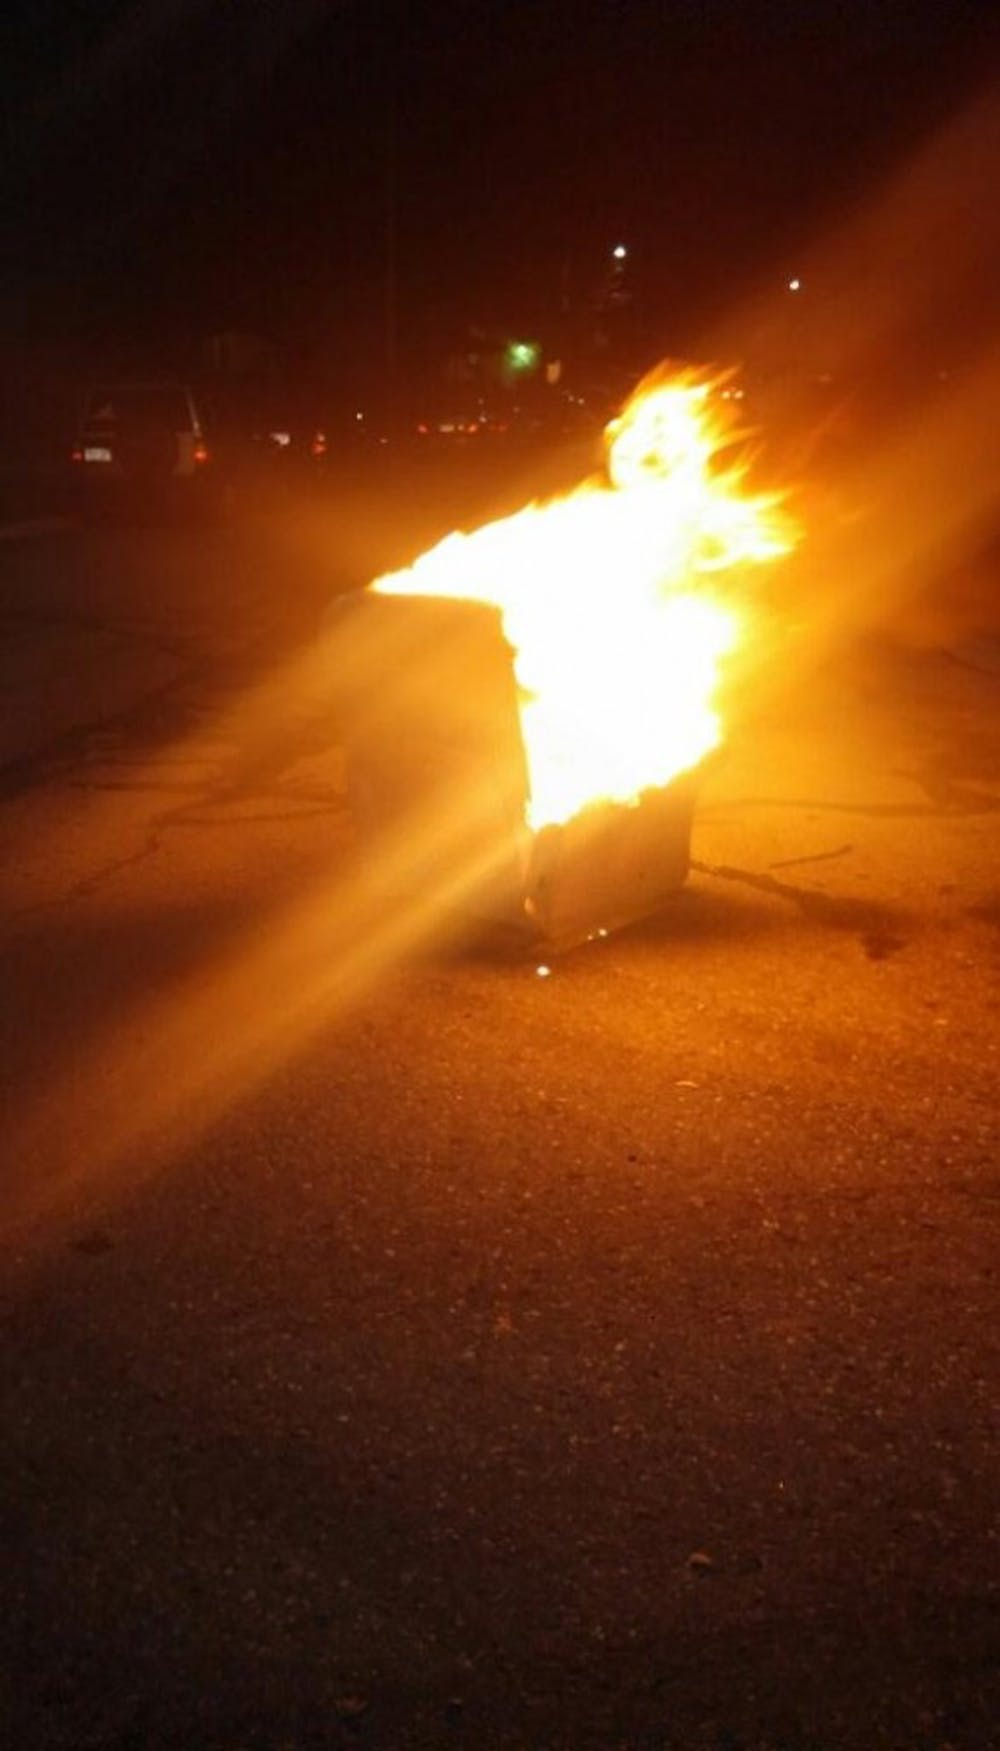 EMU fans set a couch on fire celebrating EMU's victory